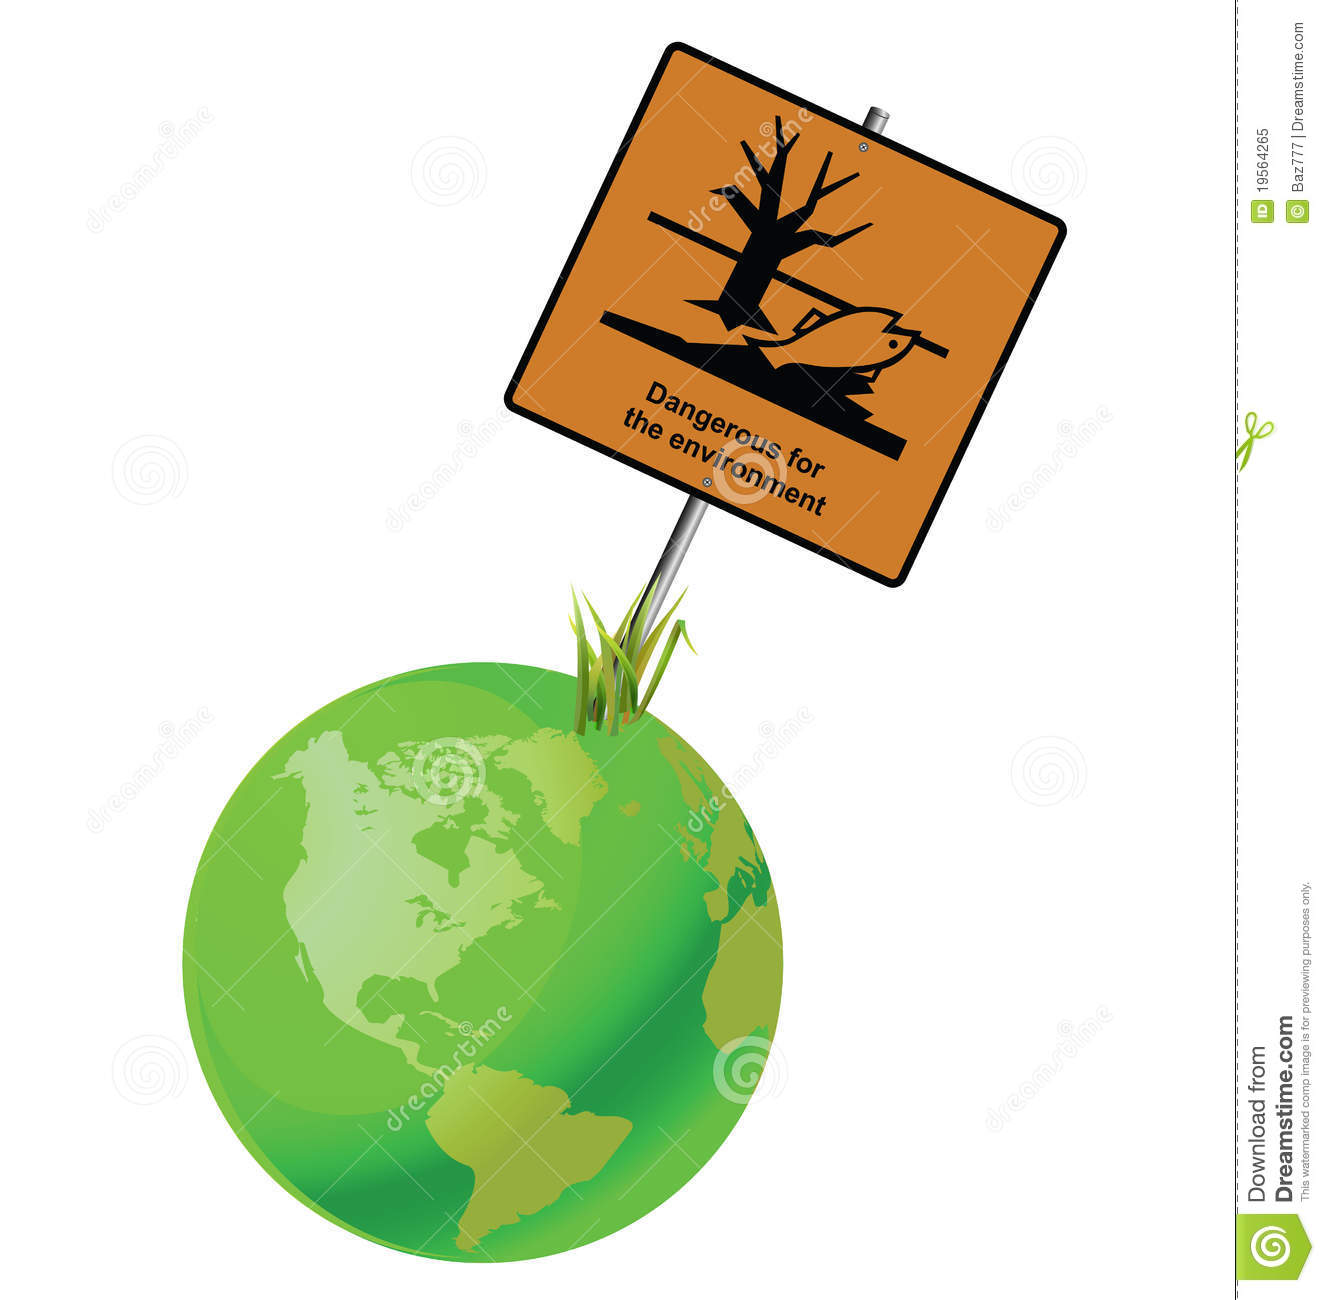 """dangers in the environment Set environmental is committed to being an industry leader in safety performance by establishing standards and continuously raising the bar in this area, we are creating a culture for all employees to """"think about safety every day""""."""